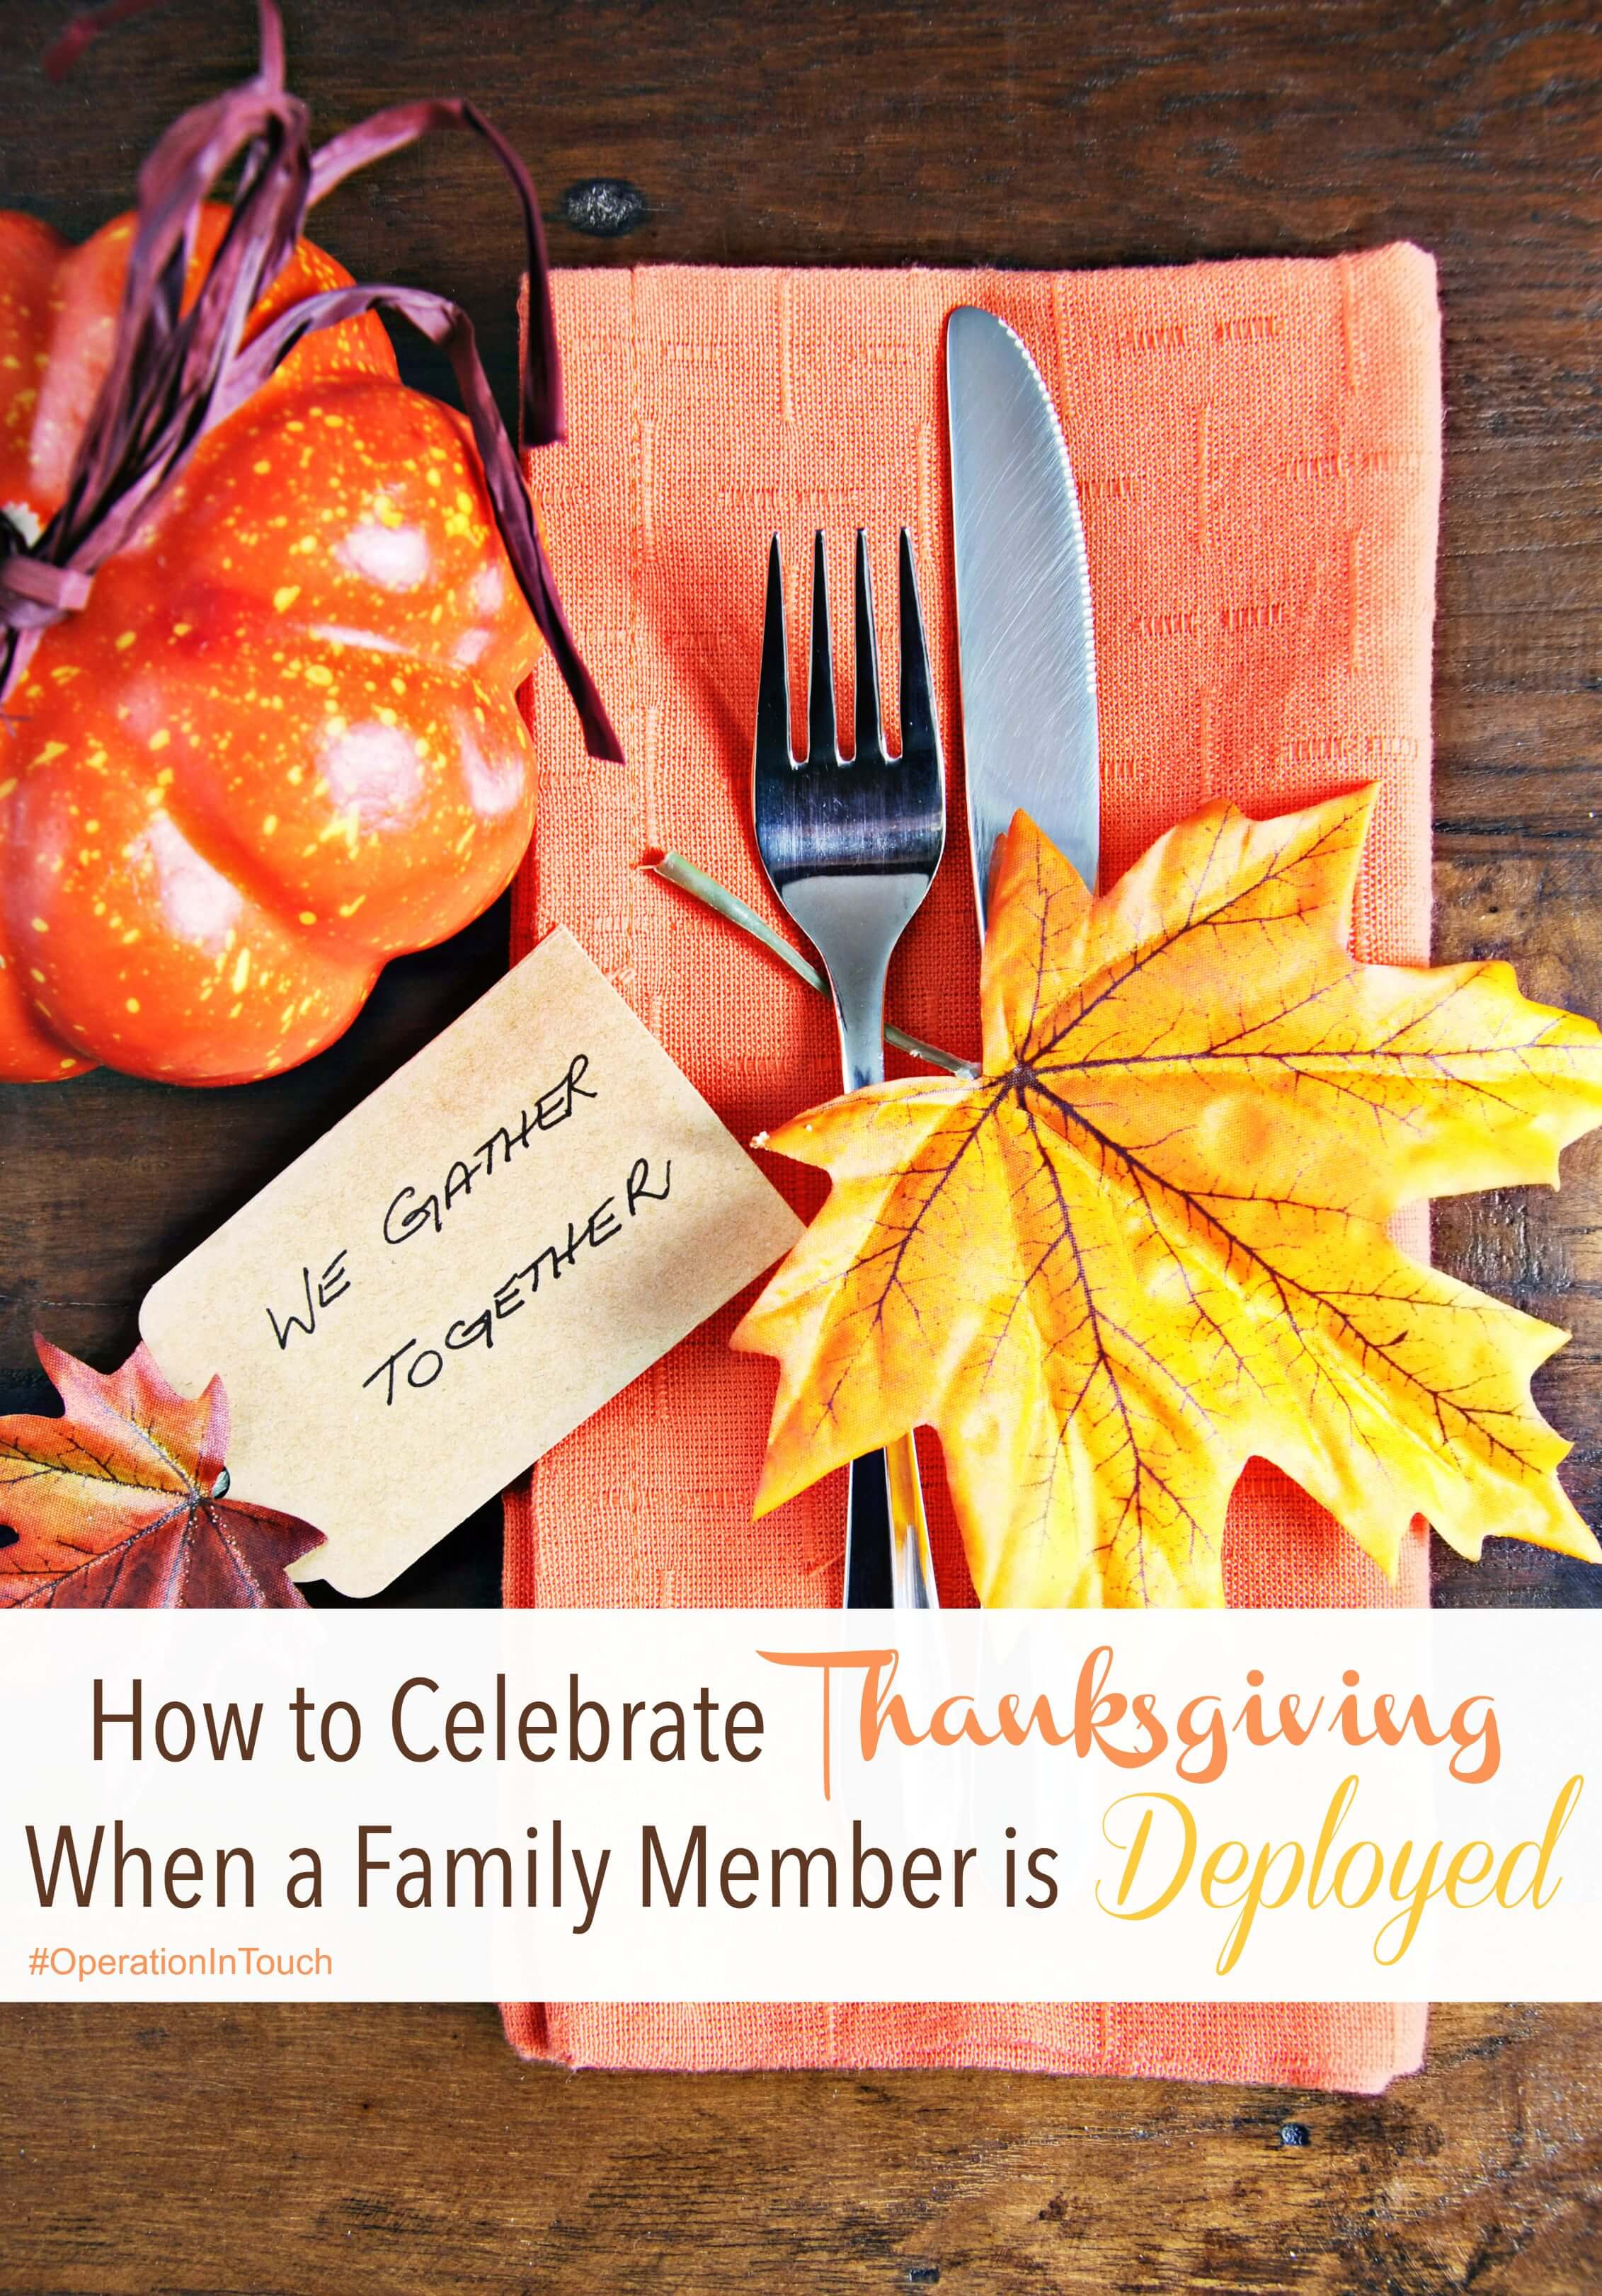 How to Celebrate Thanksgiving When a Family Member is Deployed